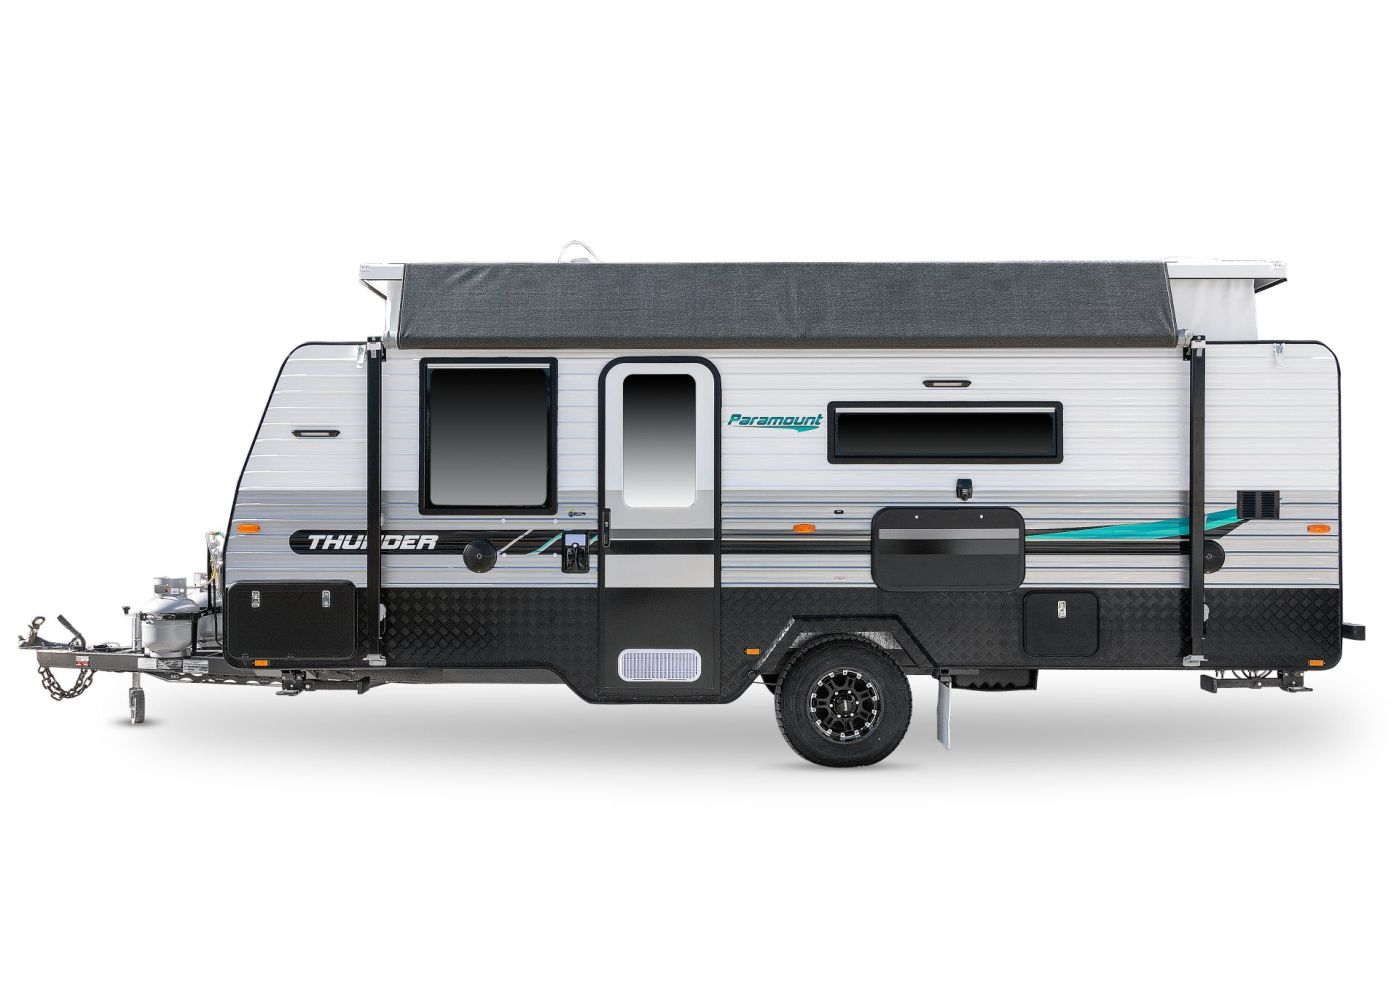 thunder 186 paramount caravans c5713 dom 062019 1.jpg white background with drop shadow